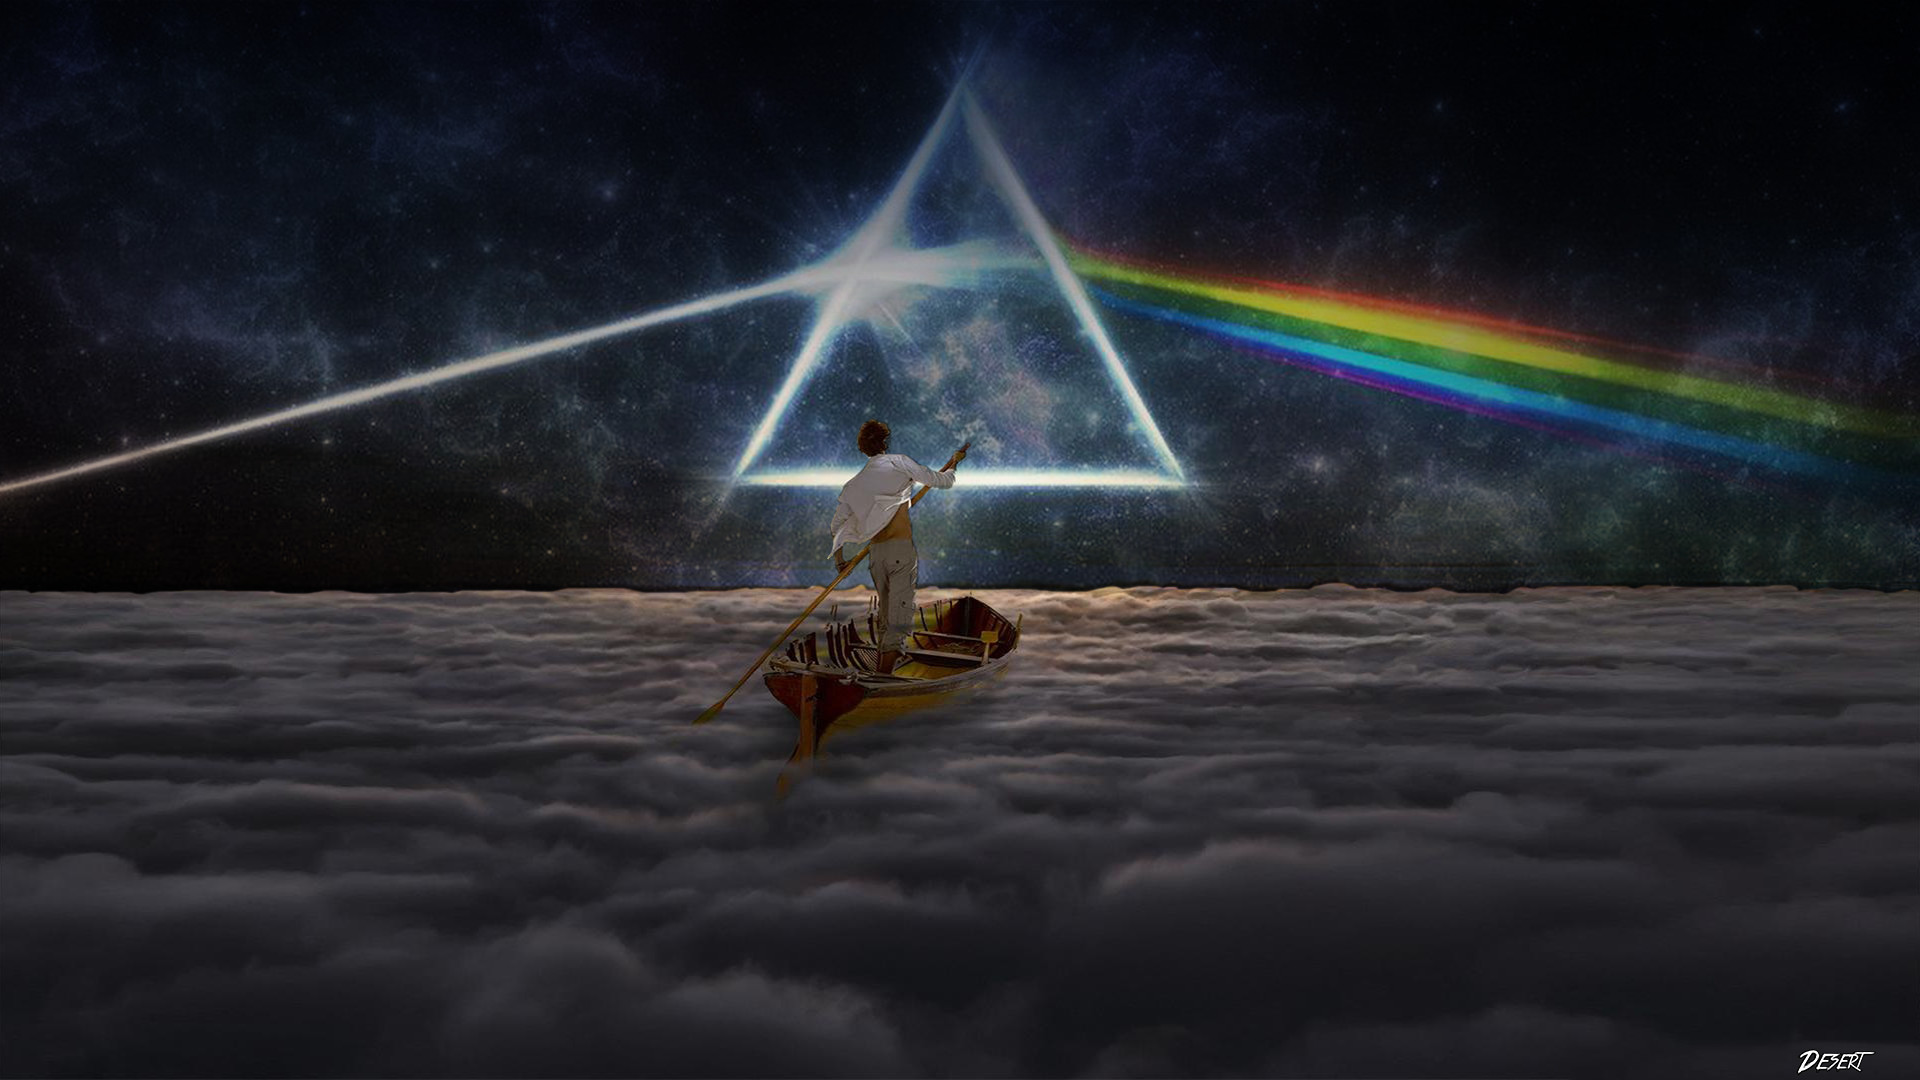 1920x1080 Pink Floyd Wallpaper by DesertWiggle on DeviantArt